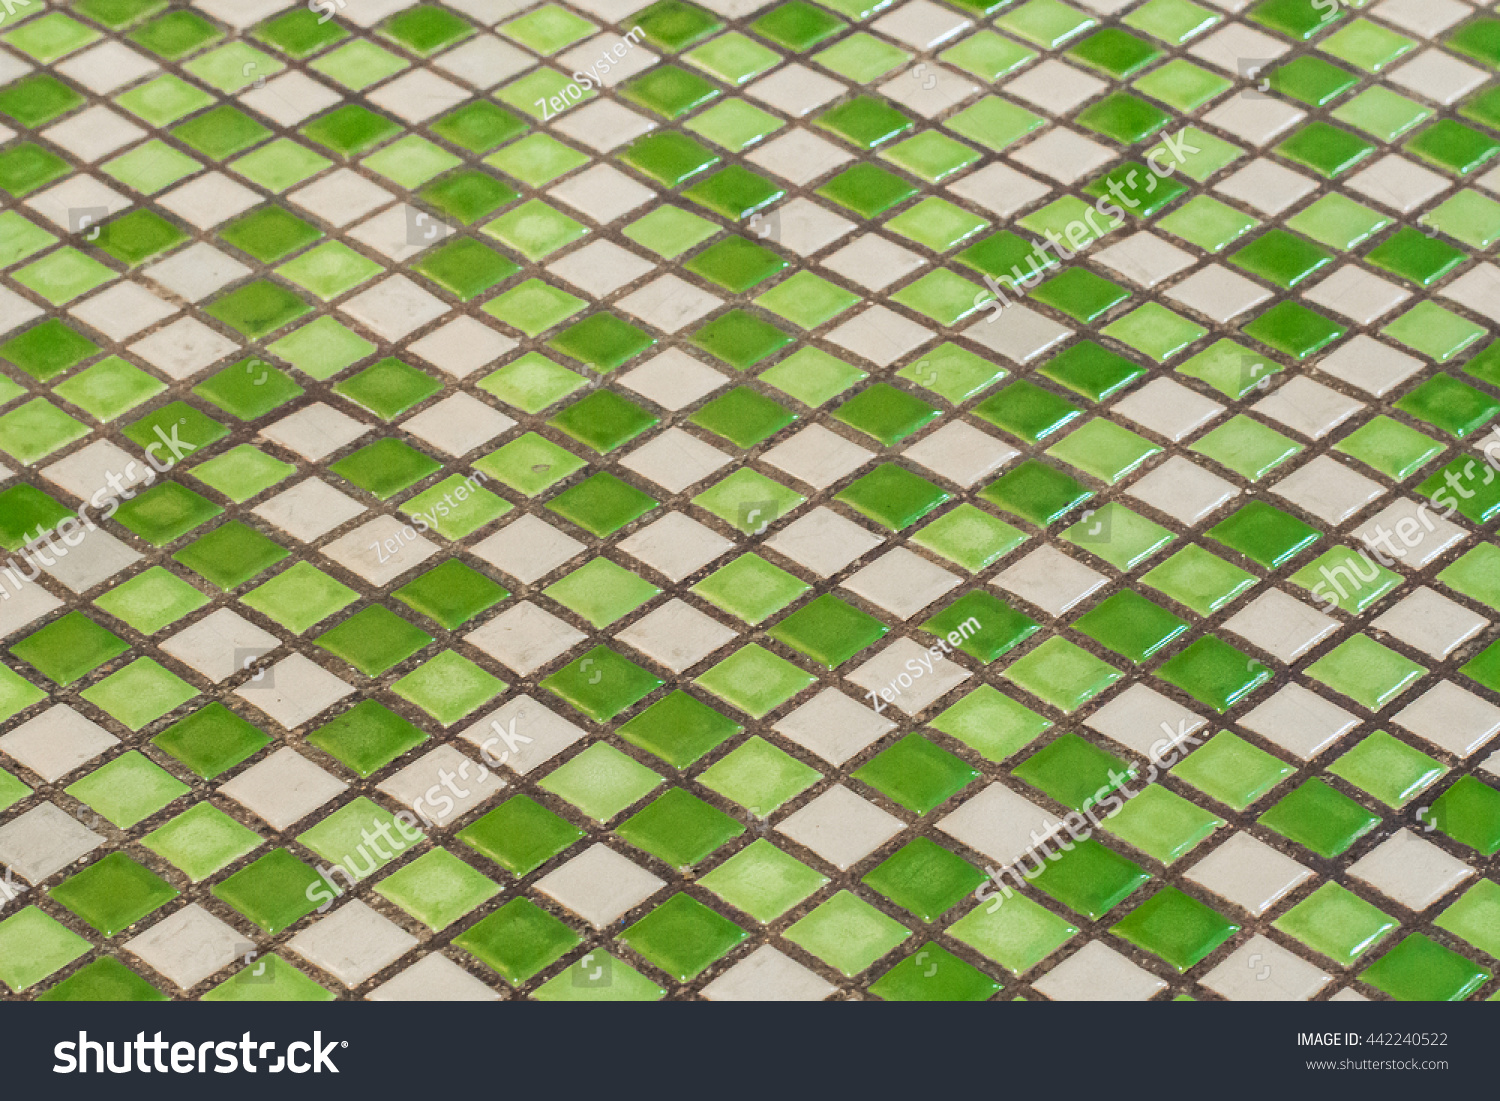 Light up floor tiles choice image home flooring design green and white floor tiles images tile flooring design ideas light up floor tiles choice image dailygadgetfo Image collections